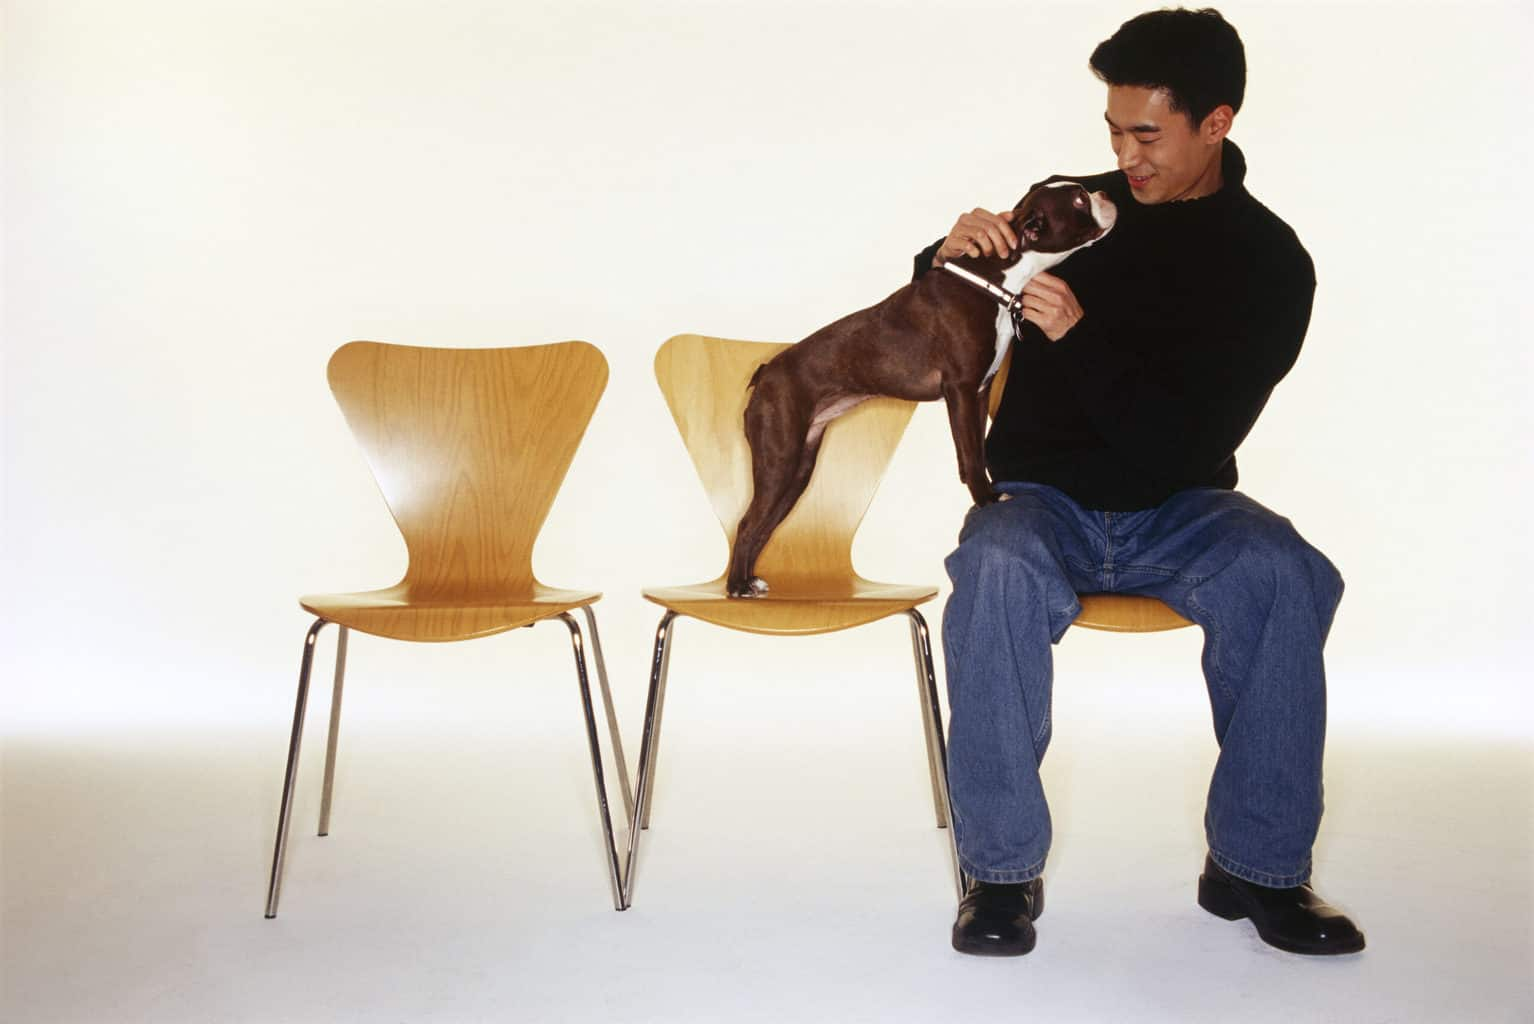 Man with Boston Terrier